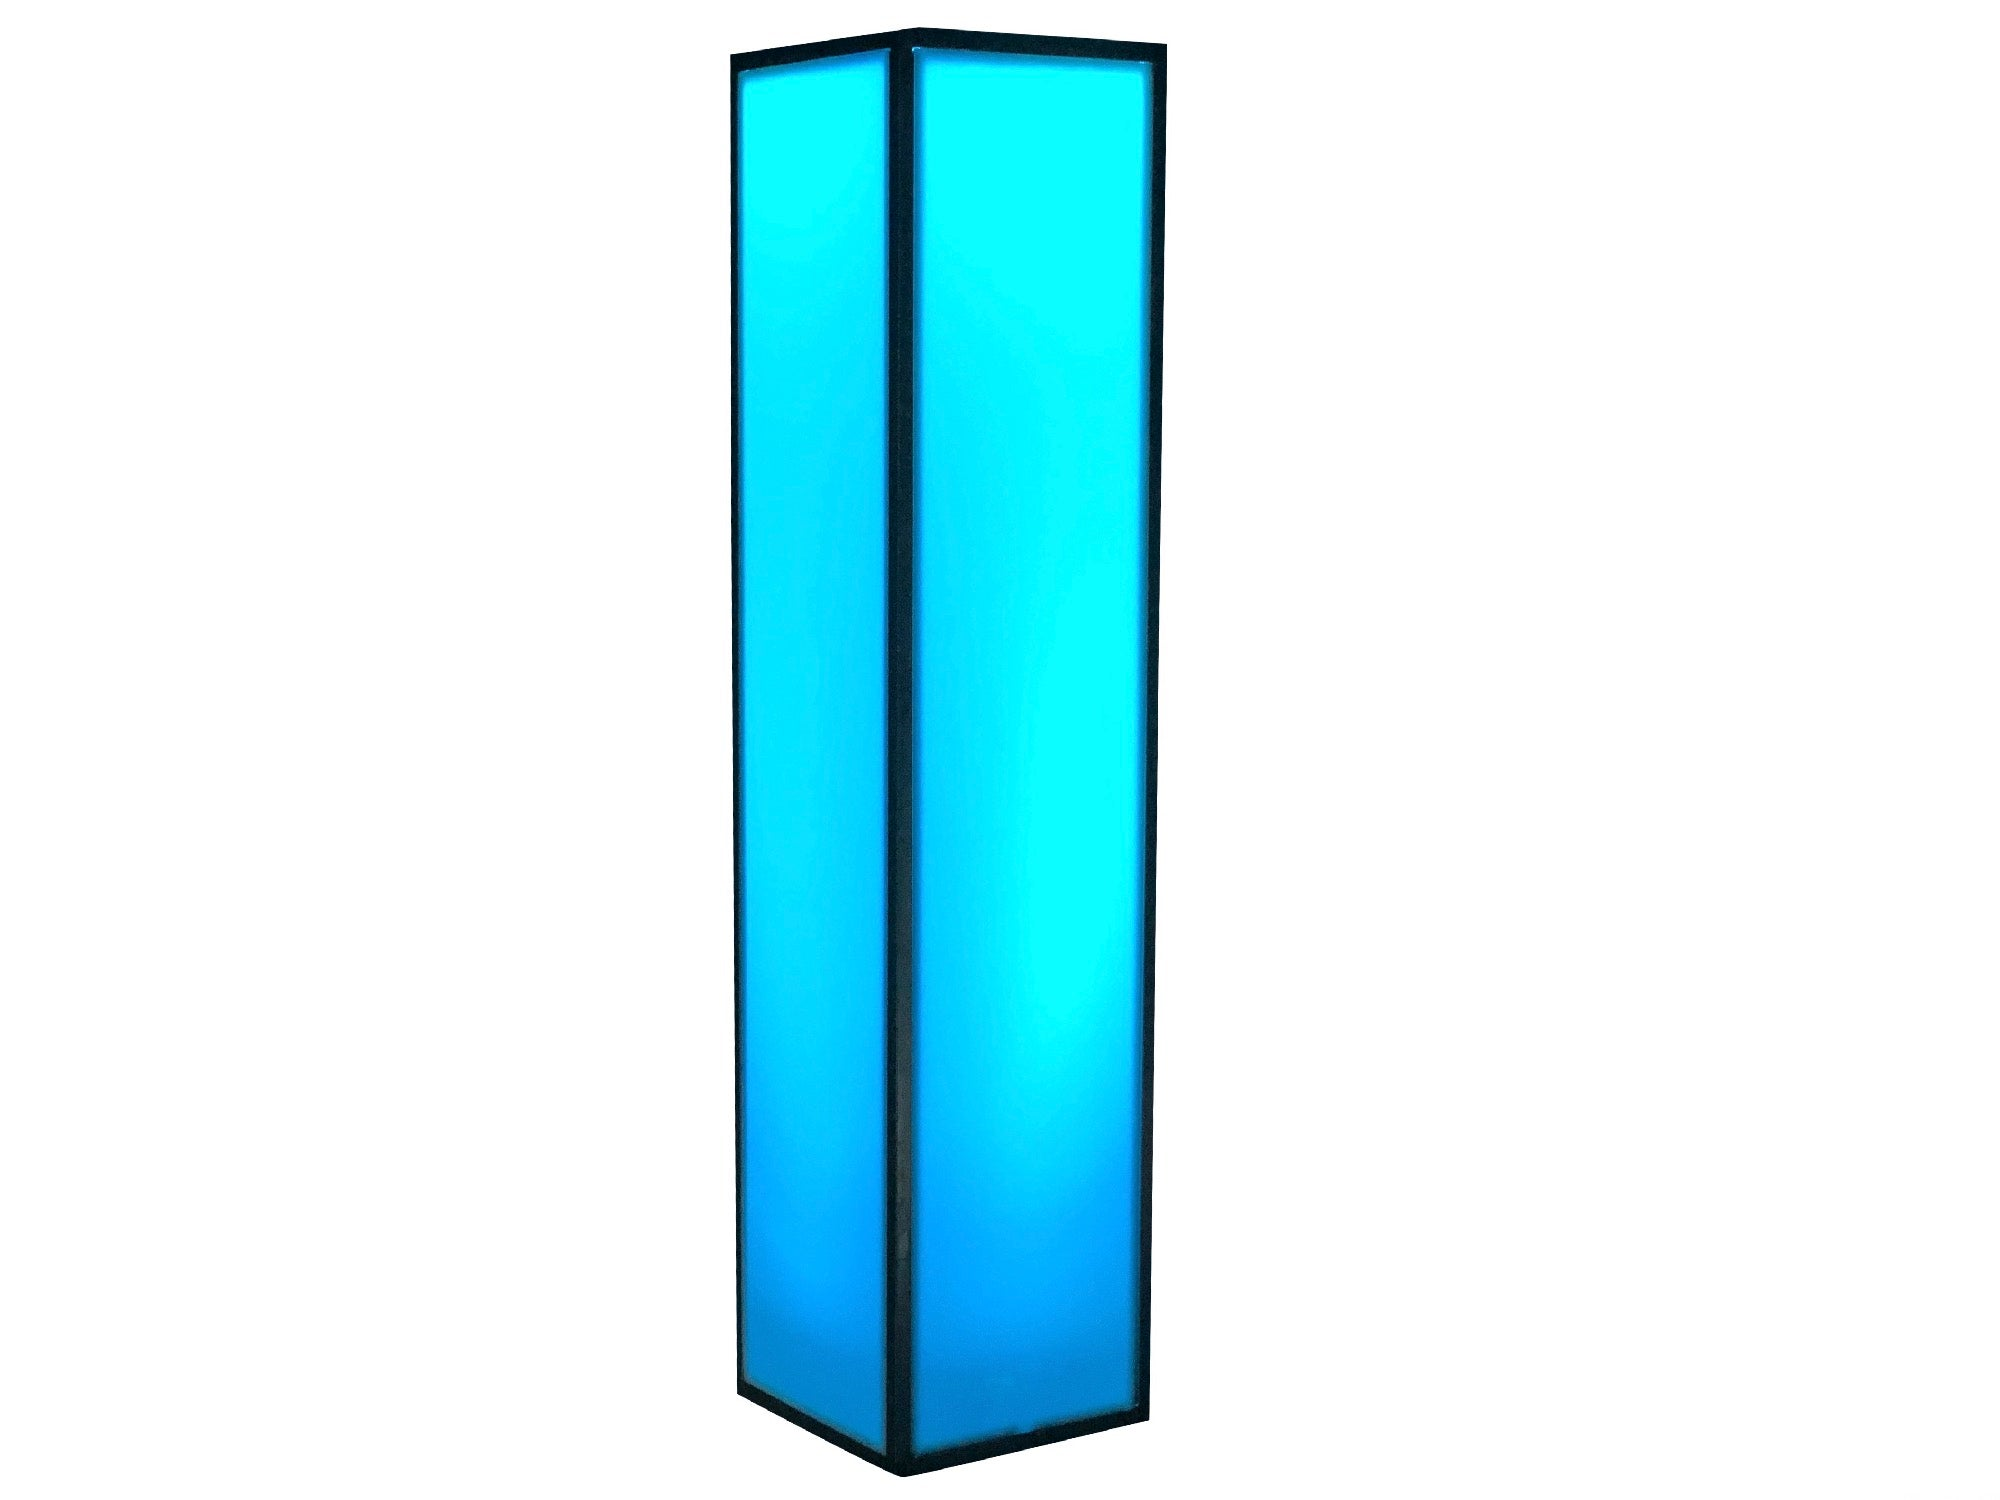 ILLUMINATED PILLAR | 8FT